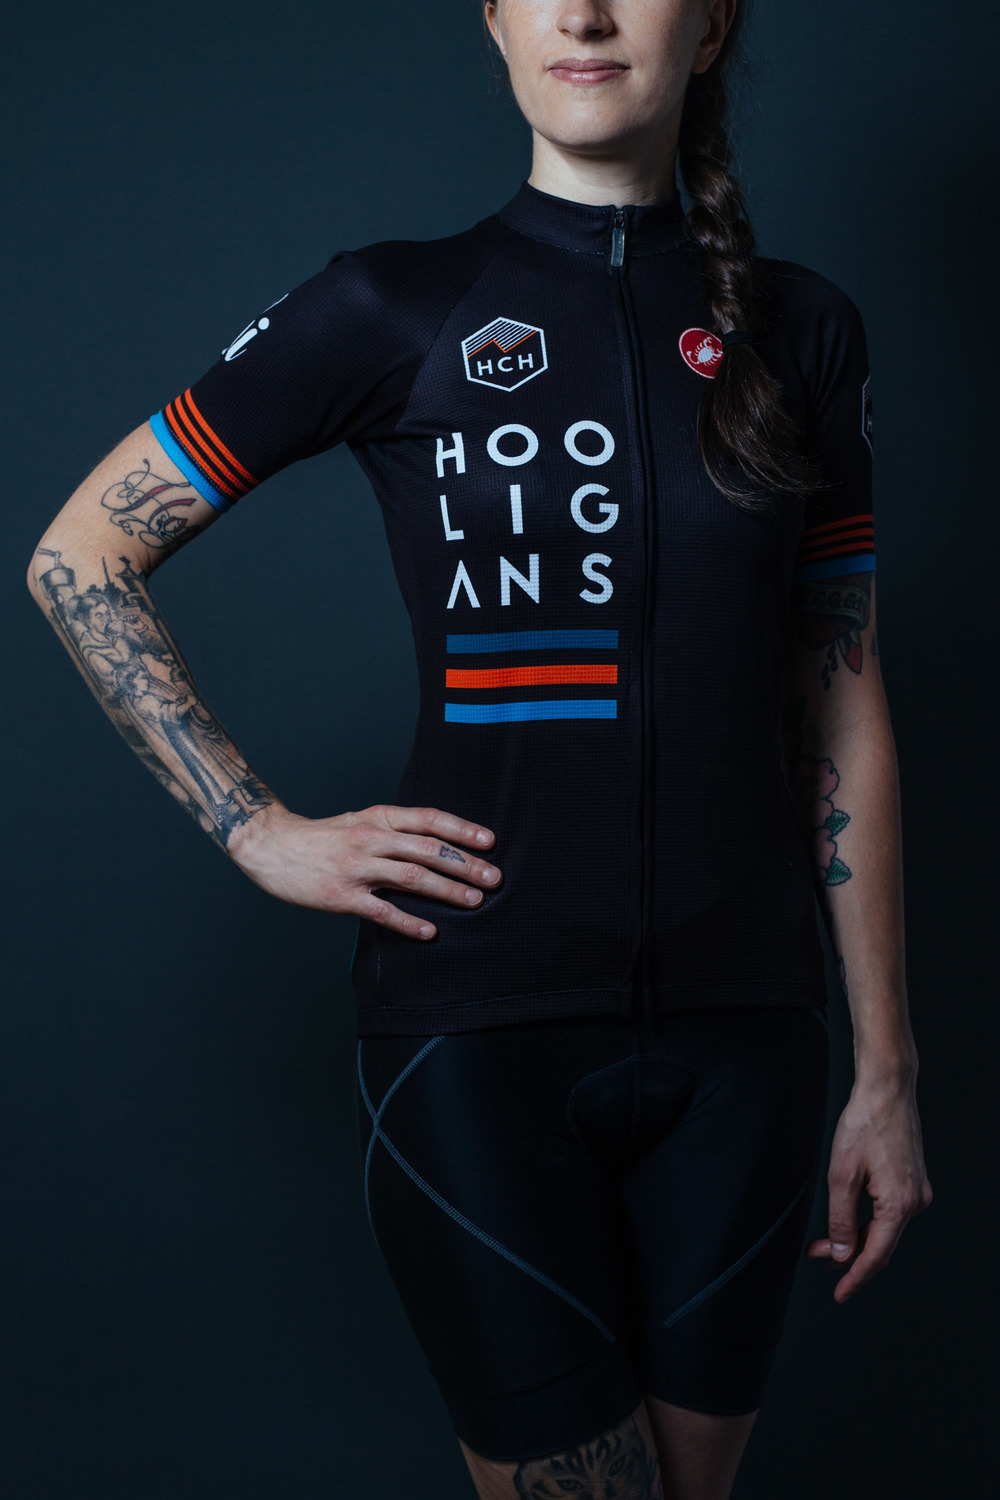 The Team Jersey